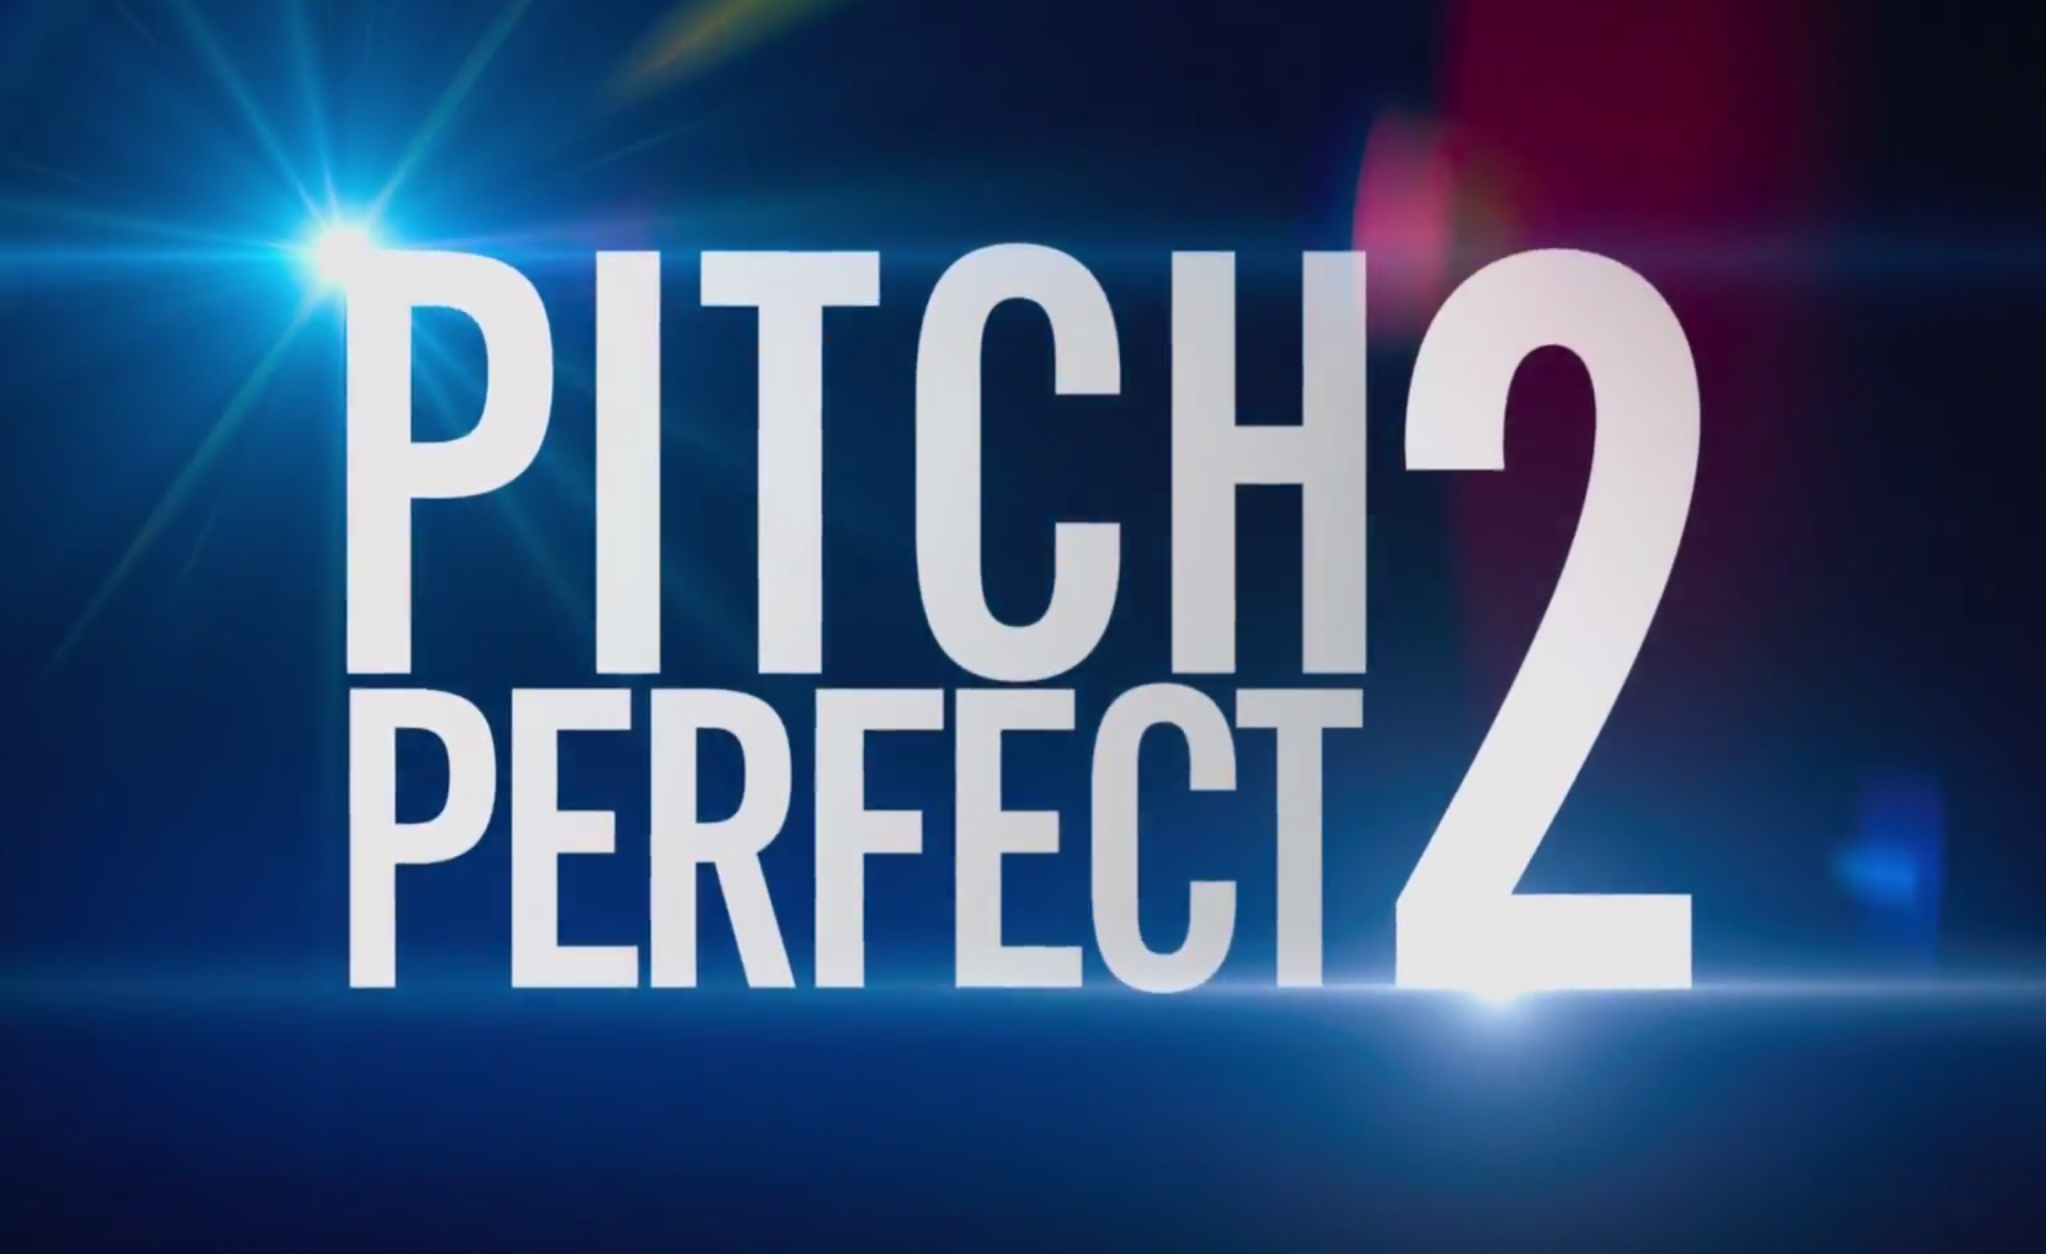 Pitch-Perfect-2-Logo-Trailer